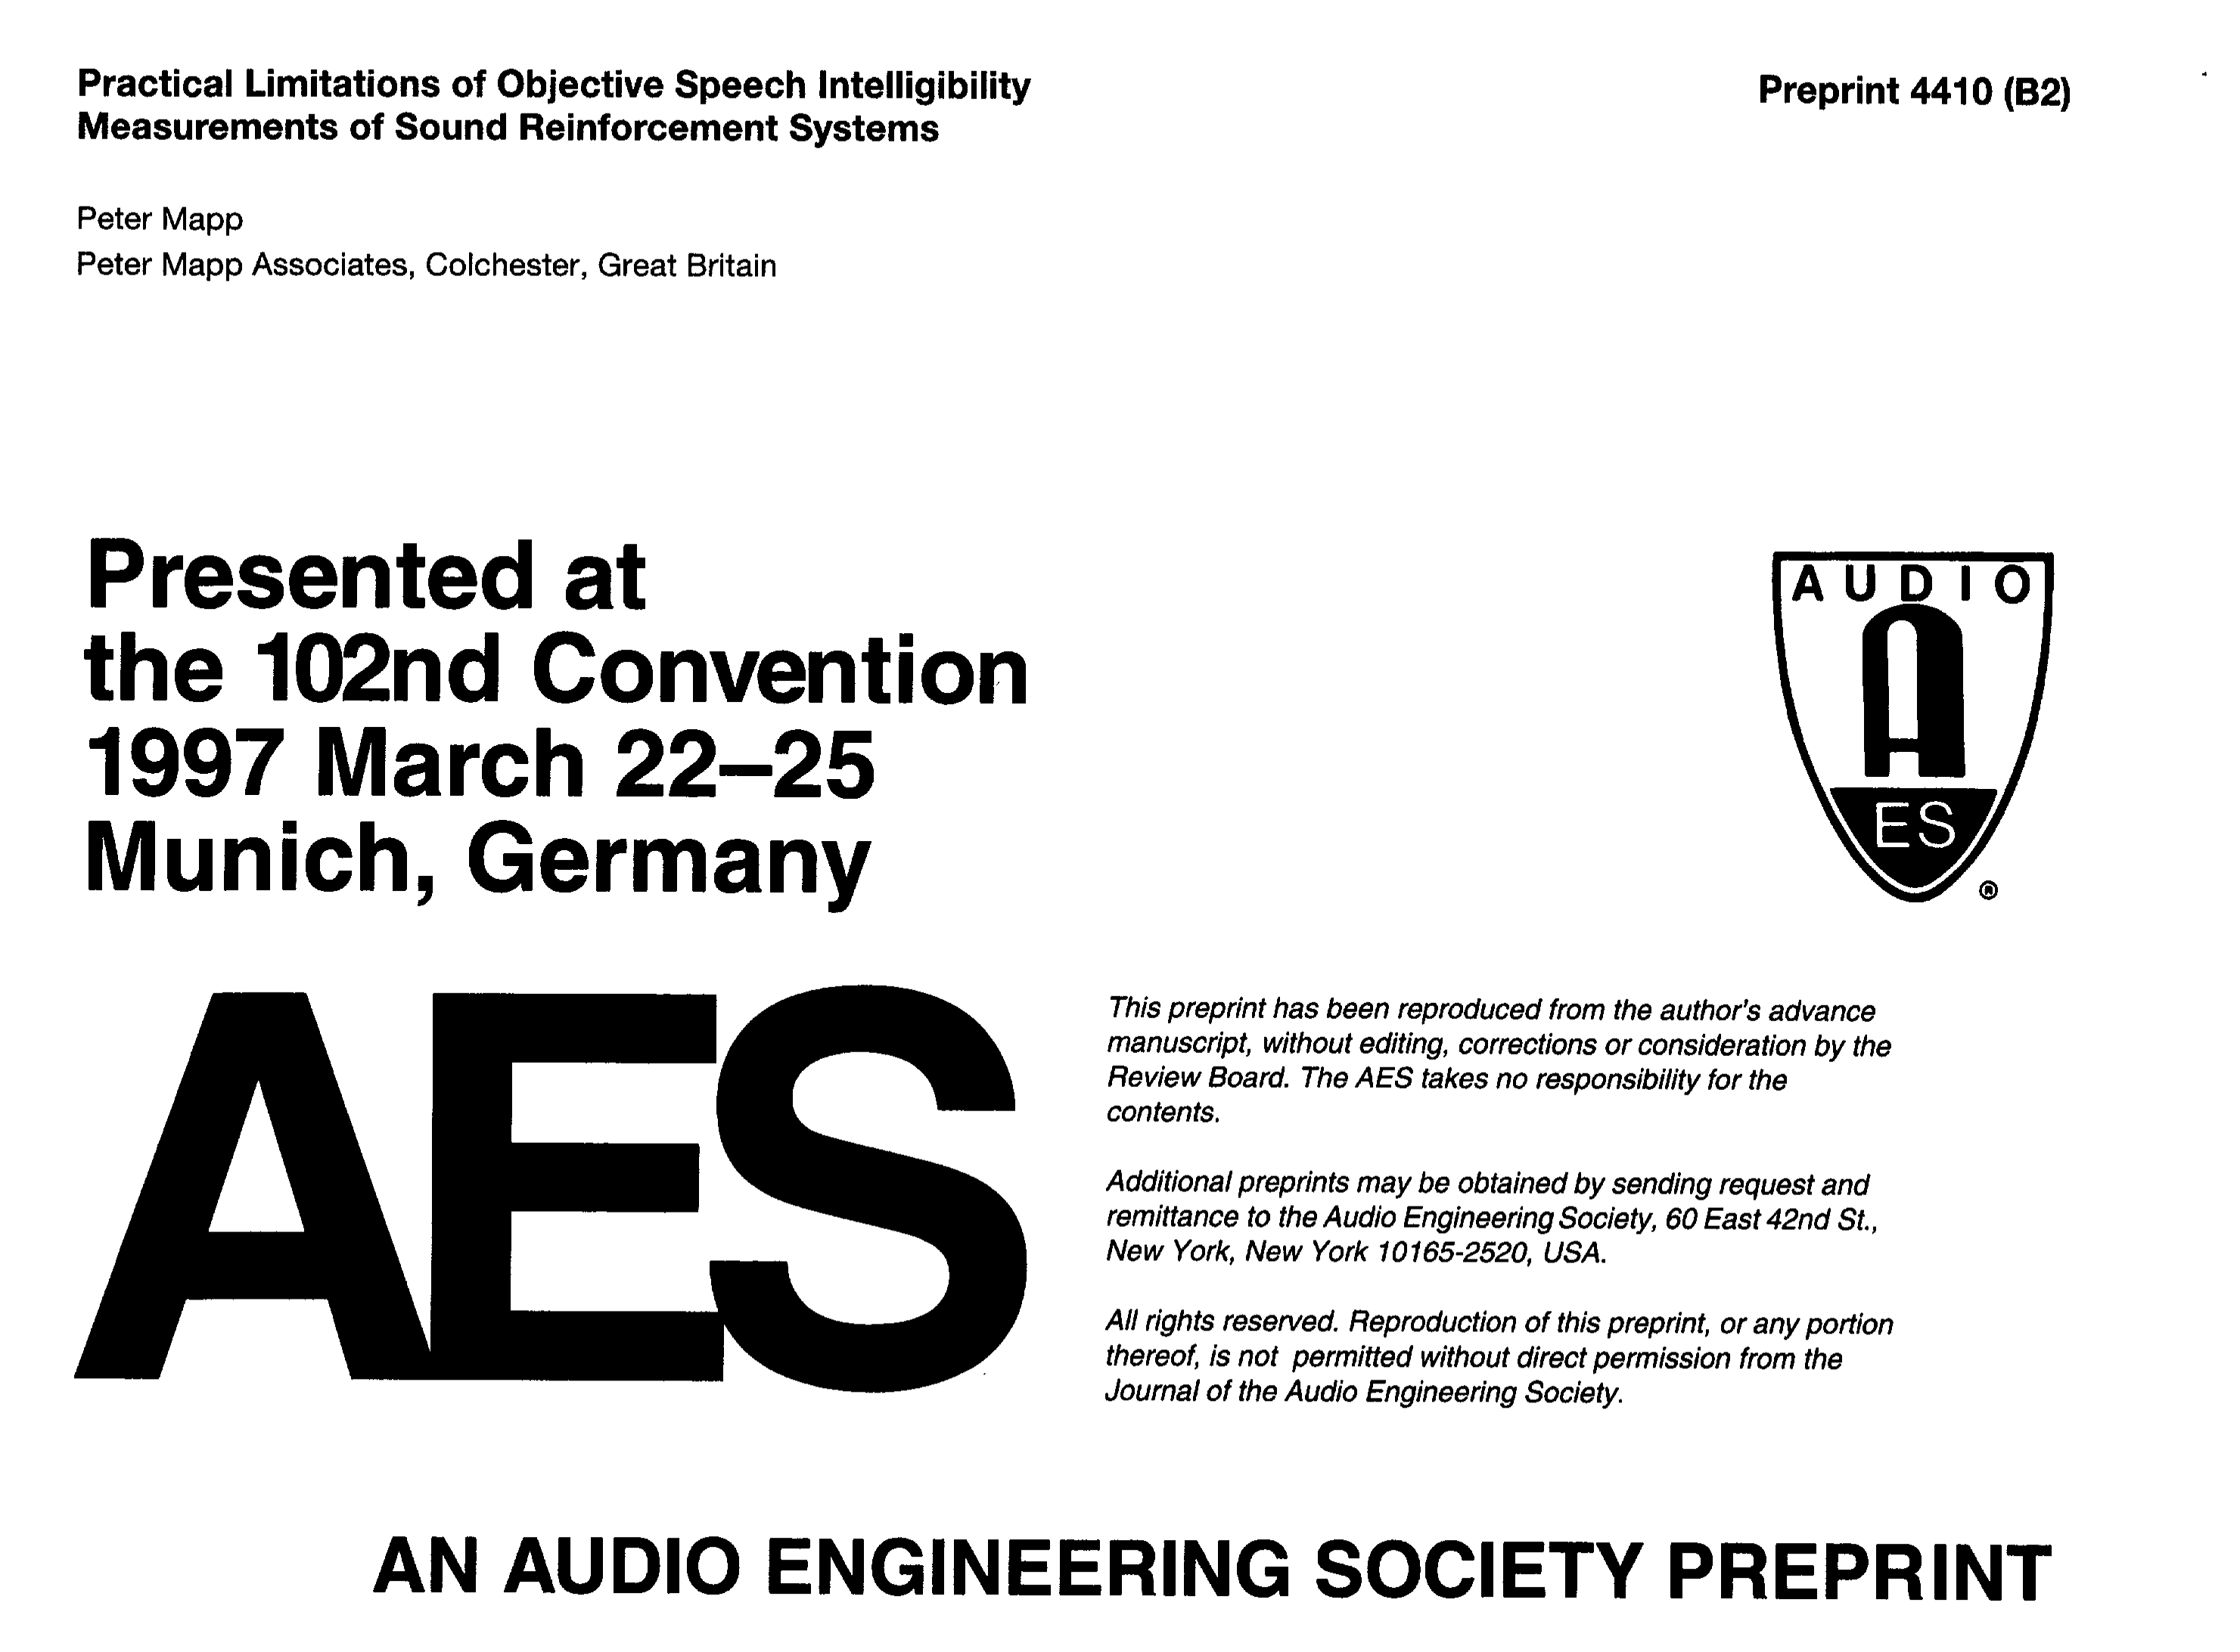 Aes E Library Practical Limitations Of Objective Speech Ntc Selection Criteria Steady State Current Intelligibility Measurements Sound Reinforcement Systems